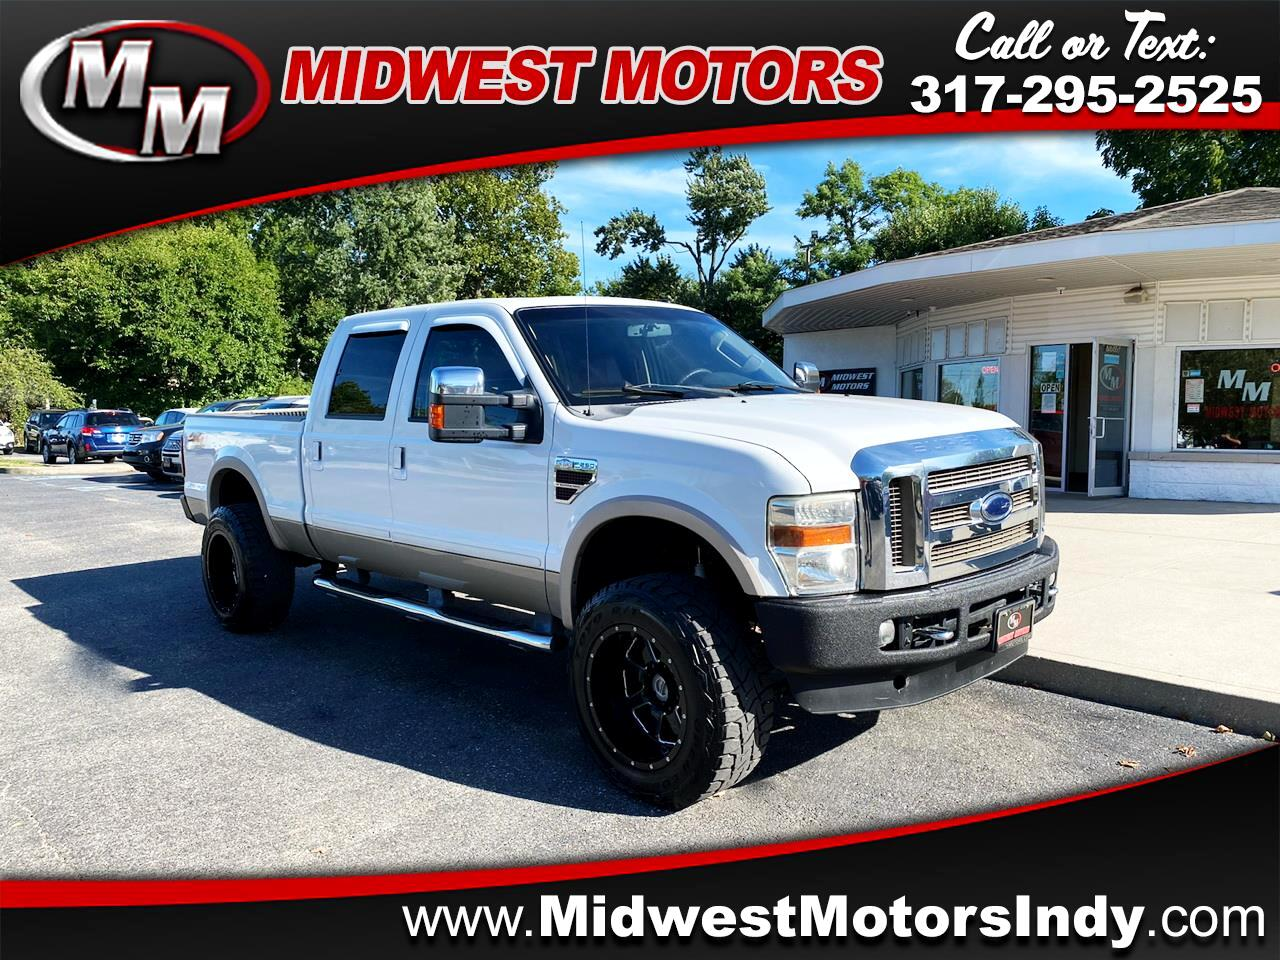 Used 2008 Ford Super Duty F 250 Srw 4wd Crew Cab 156 King Ranch For Sale In Indianapolis In 46214 Midwest Motors